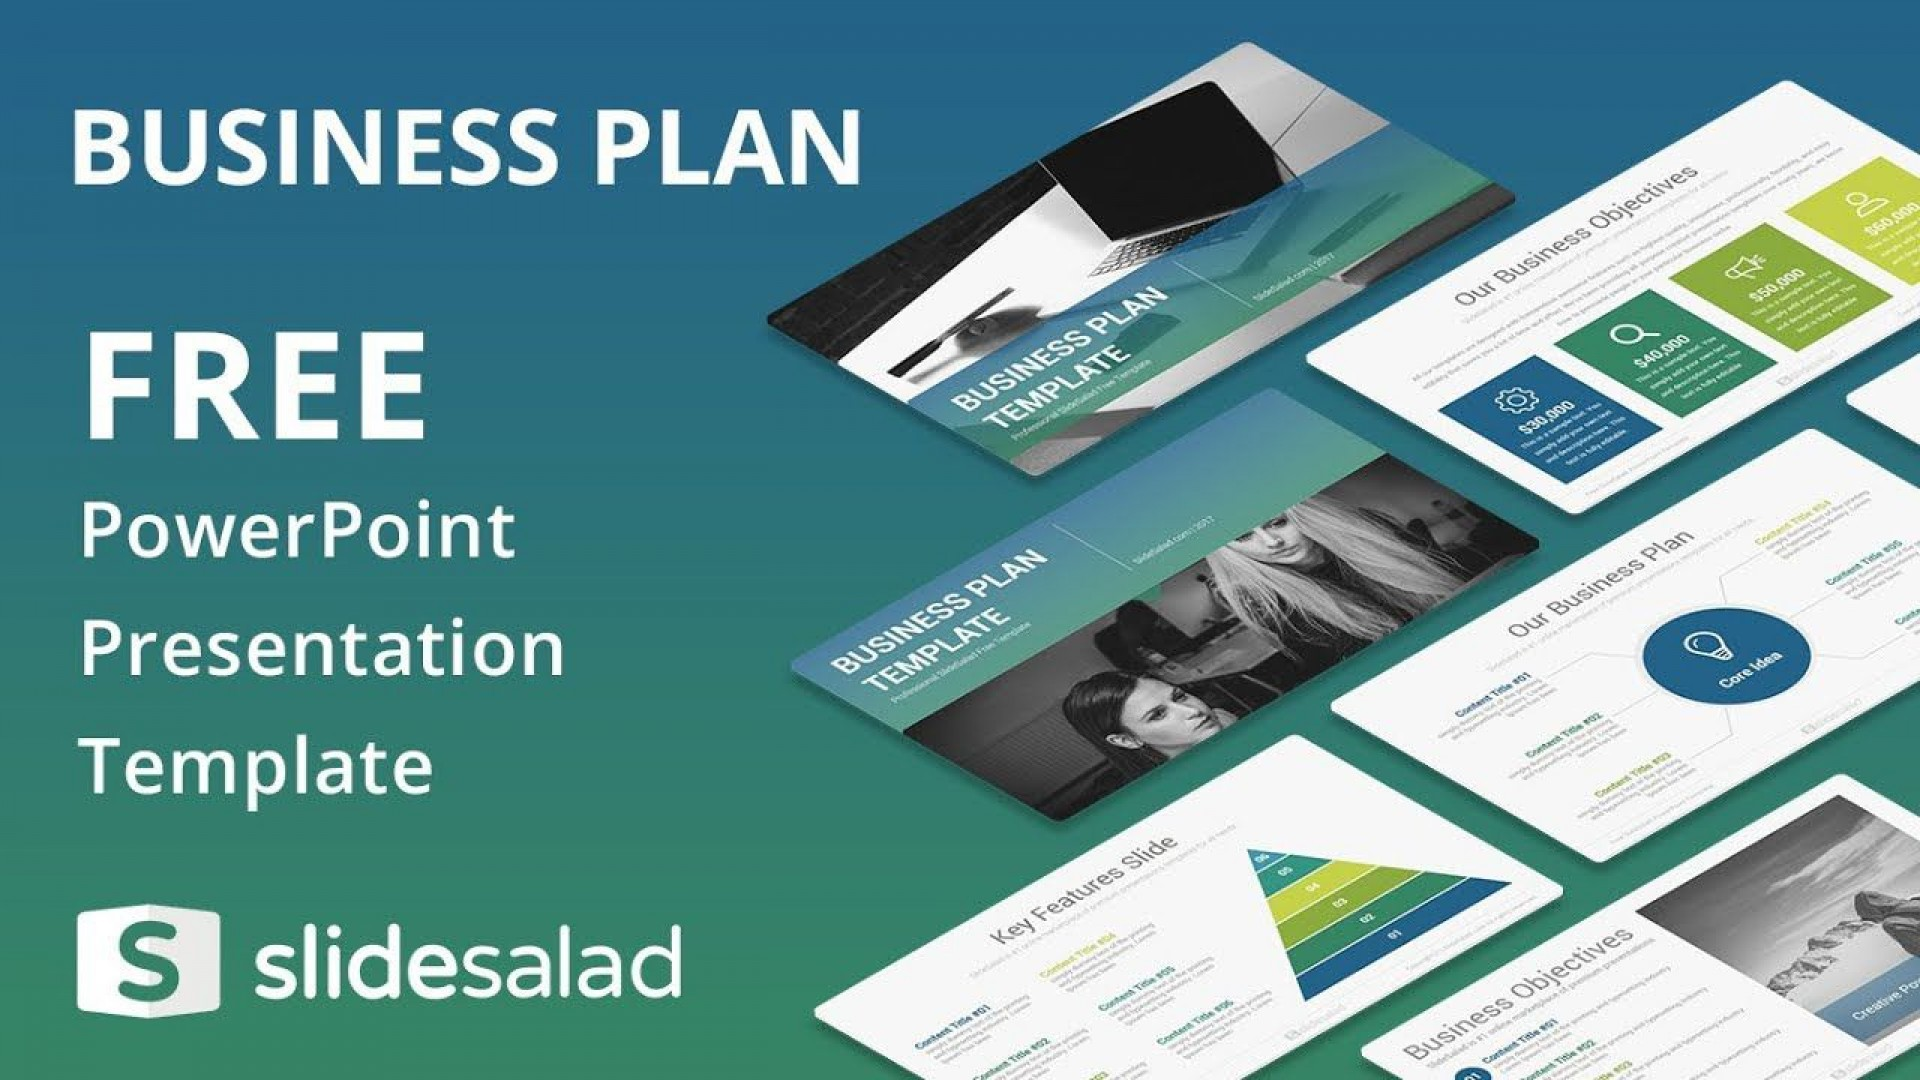 008 Exceptional Free Busines Plan Template Ppt Highest Quality  2020 Download Startup 30 60 901920